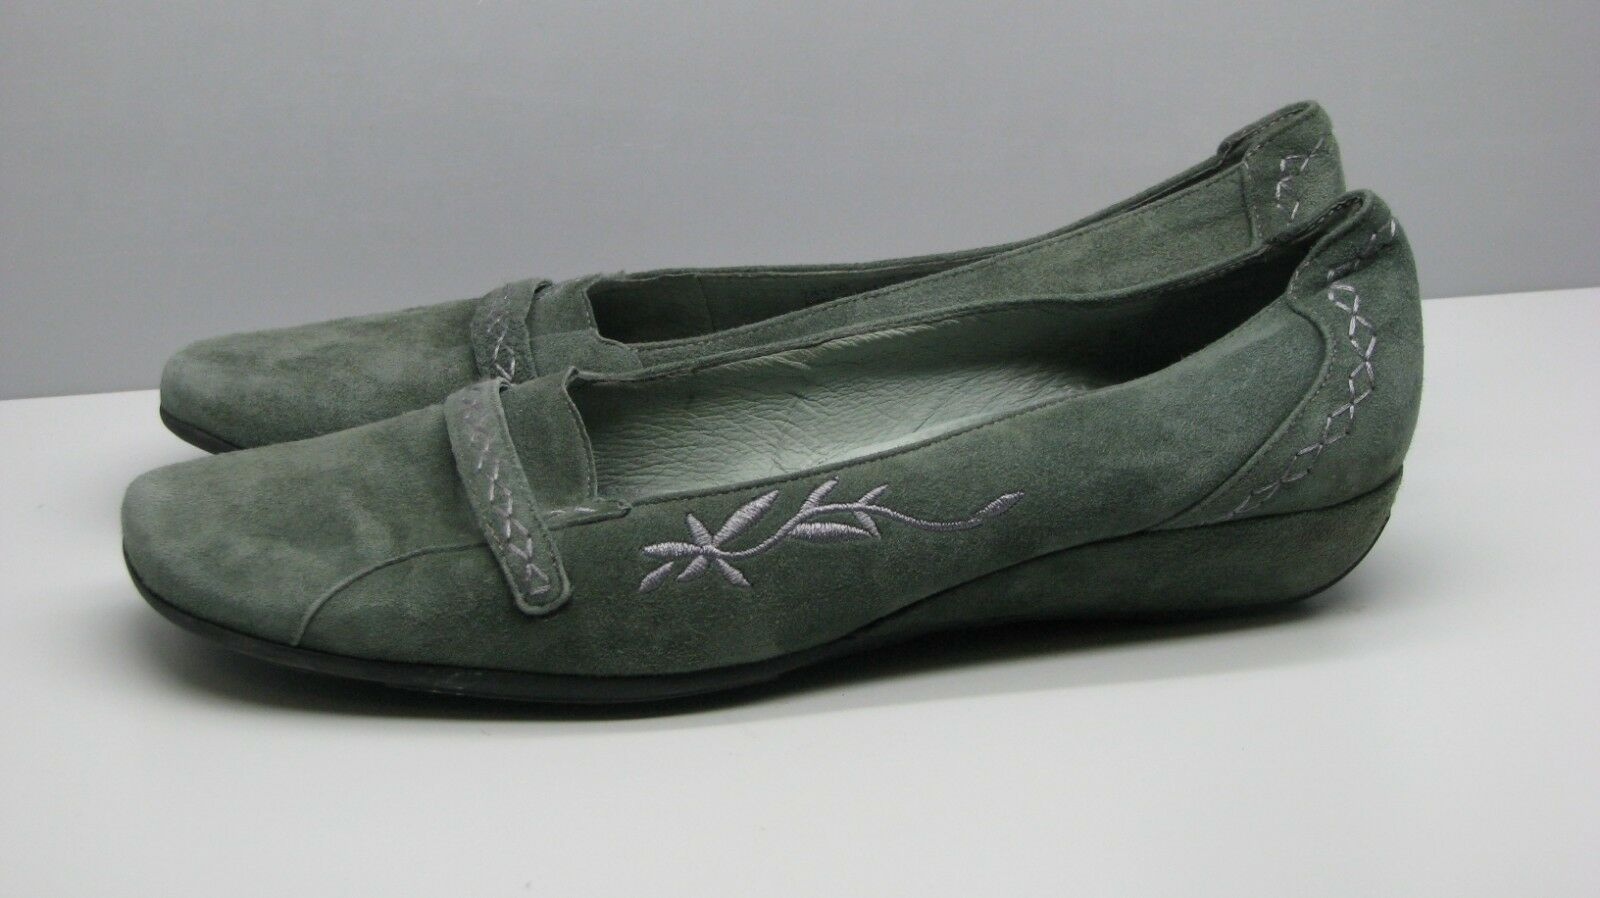 Clarks Artisan SHOES Apple Green Suede Leather FLATS Woman's 9.5 M Cute